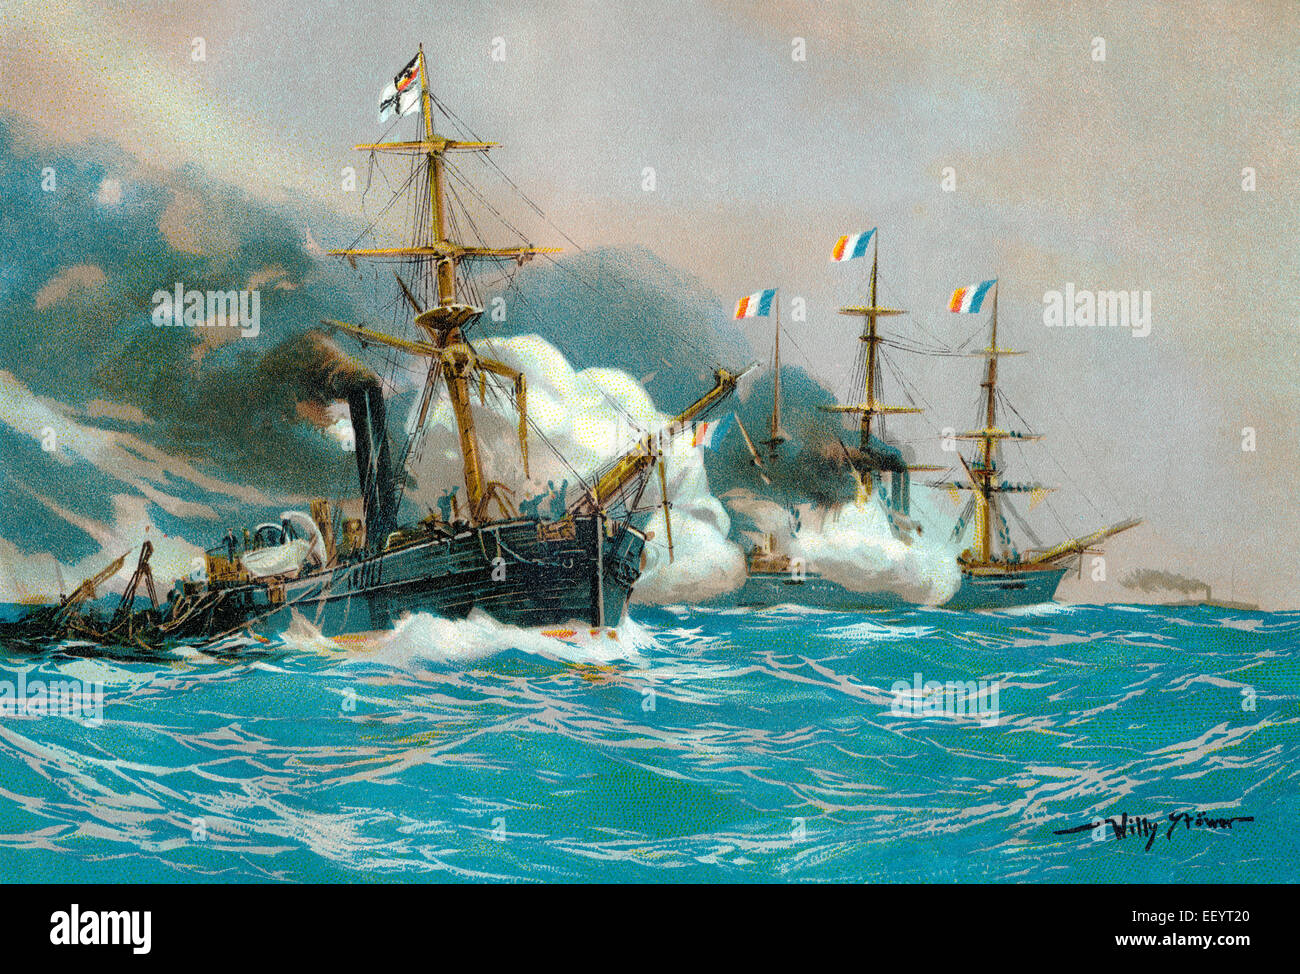 Historical painting by Willy Stöwer, Naval Battle of the steam gunboat of the Chamaeleon-class Meteor, 23 October - Stock Image